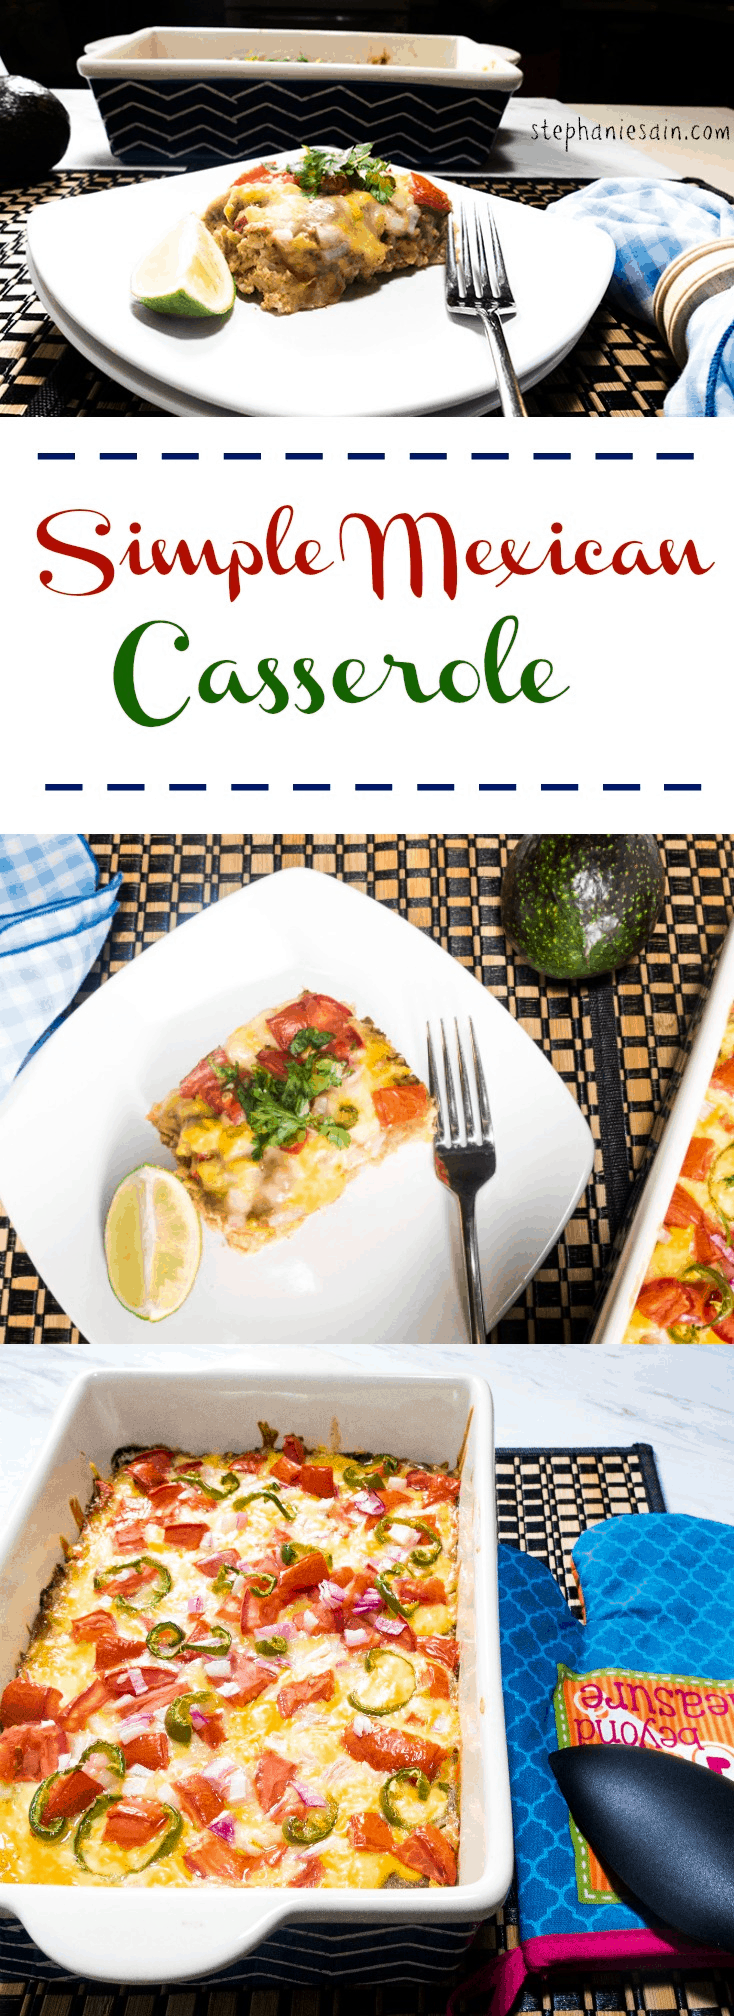 Simple Mexican Casserole is an easy to prepare dinner that is tasty, vegetarian, and gluten free